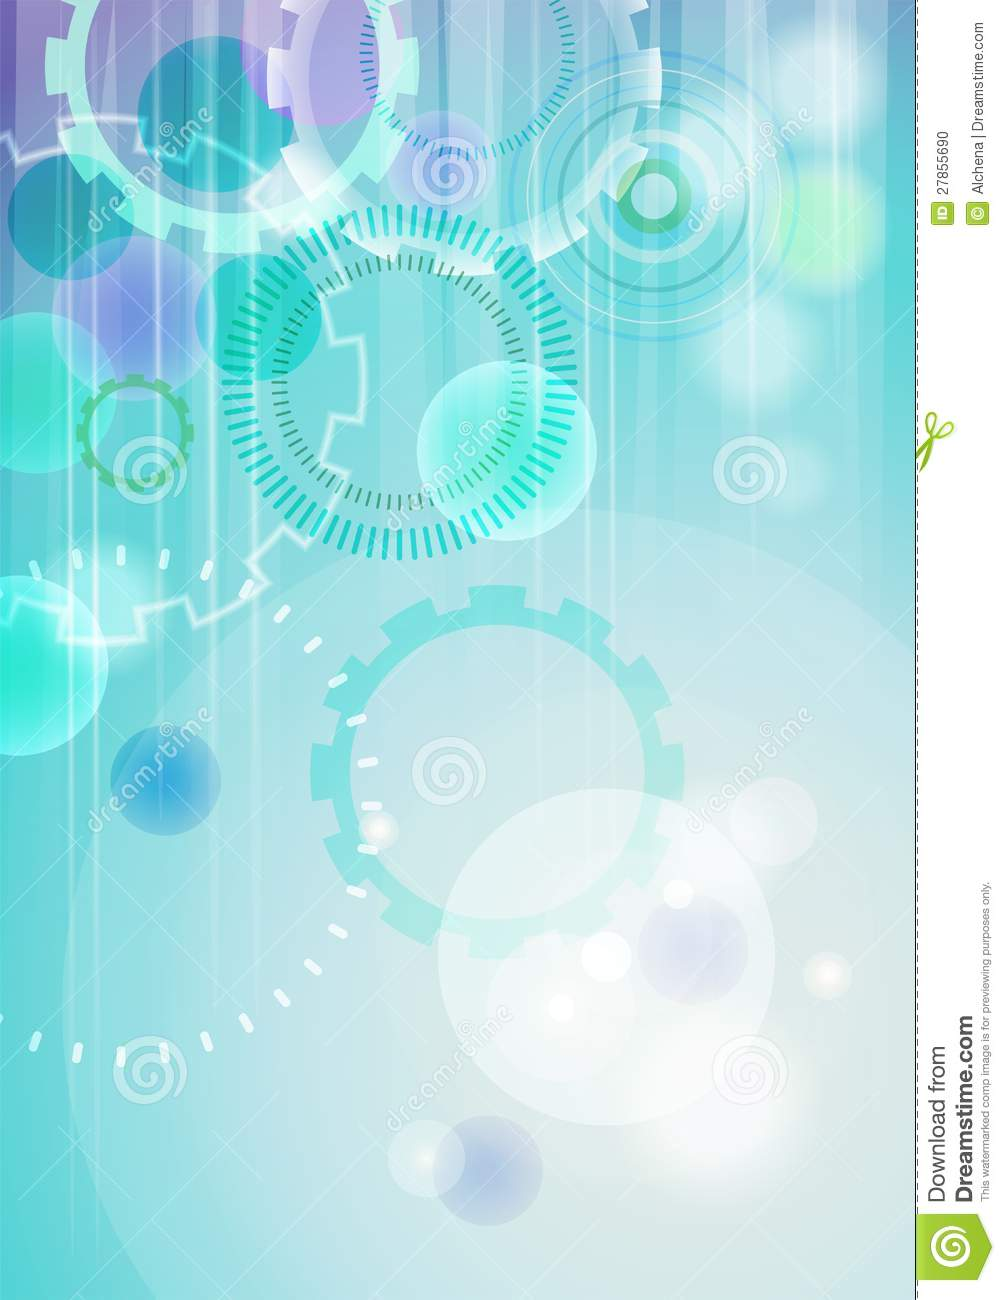 Vector Technical Abstract Background Stock Photo